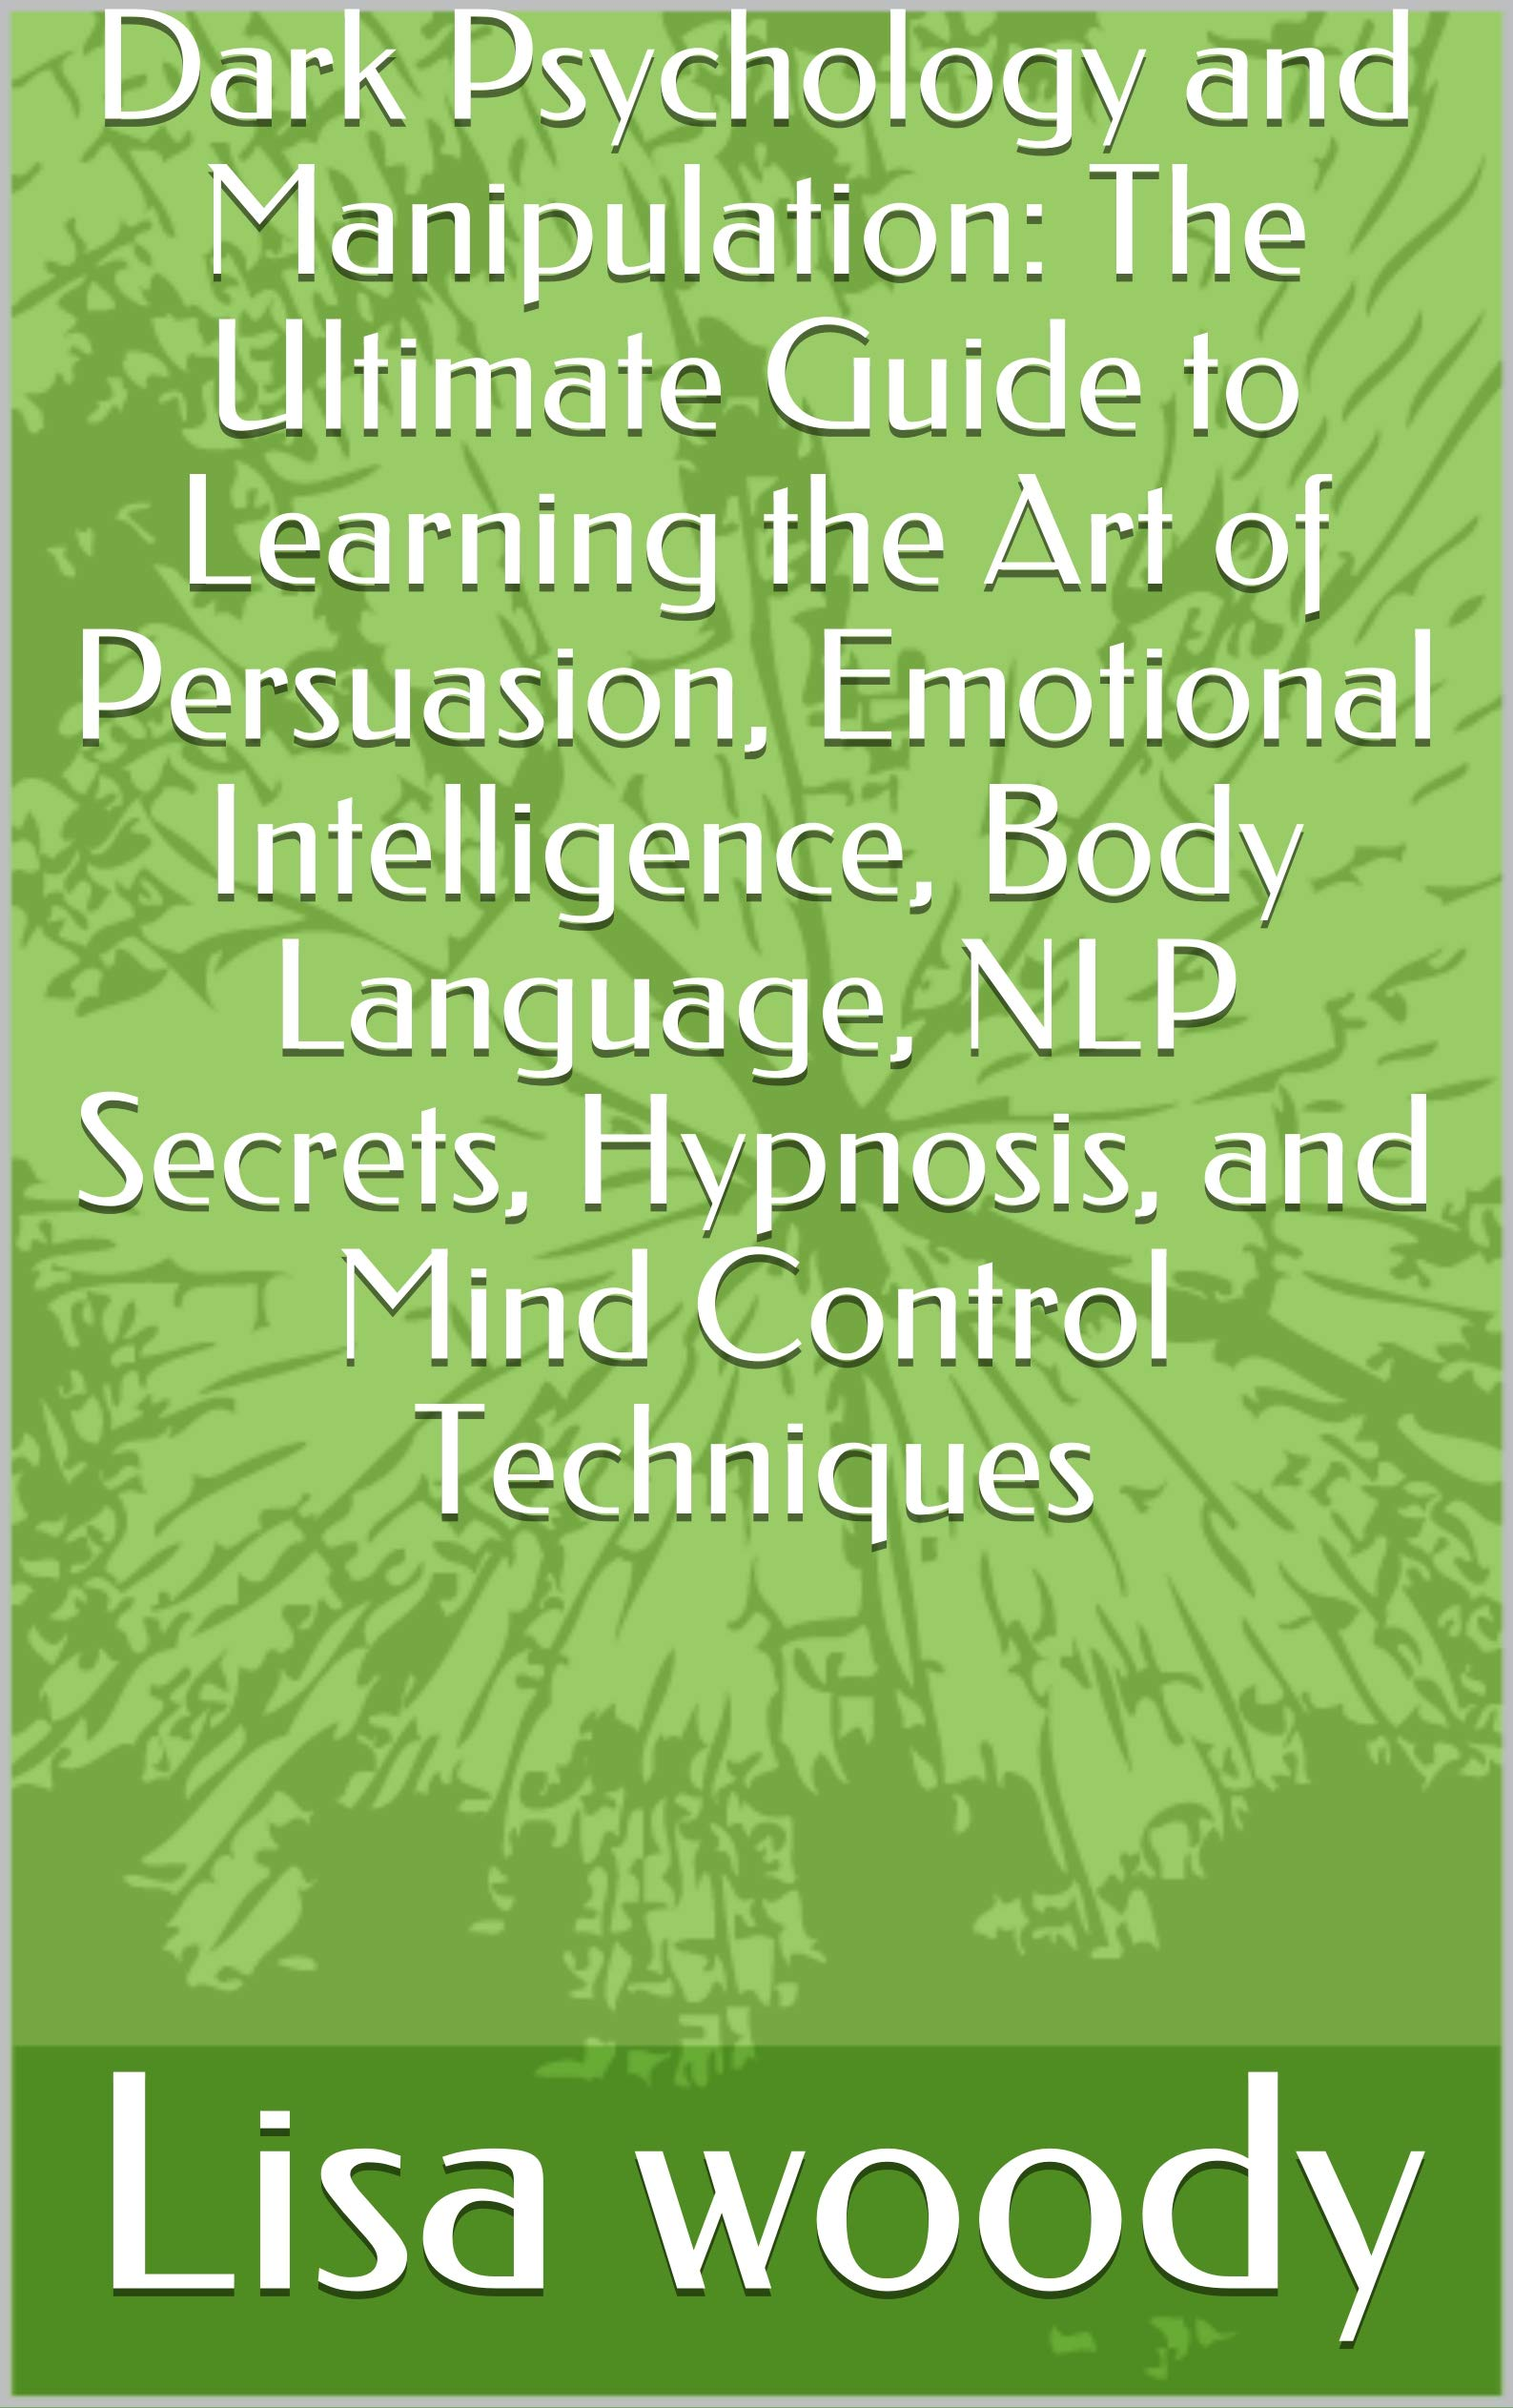 Dark Psychology and Manipulation: The Ultimate Guide to Learning the Art of Persuasion, Emotional Intelligence, Body Language, NLP Secrets, Hypnosis, and Mind Control Techniques